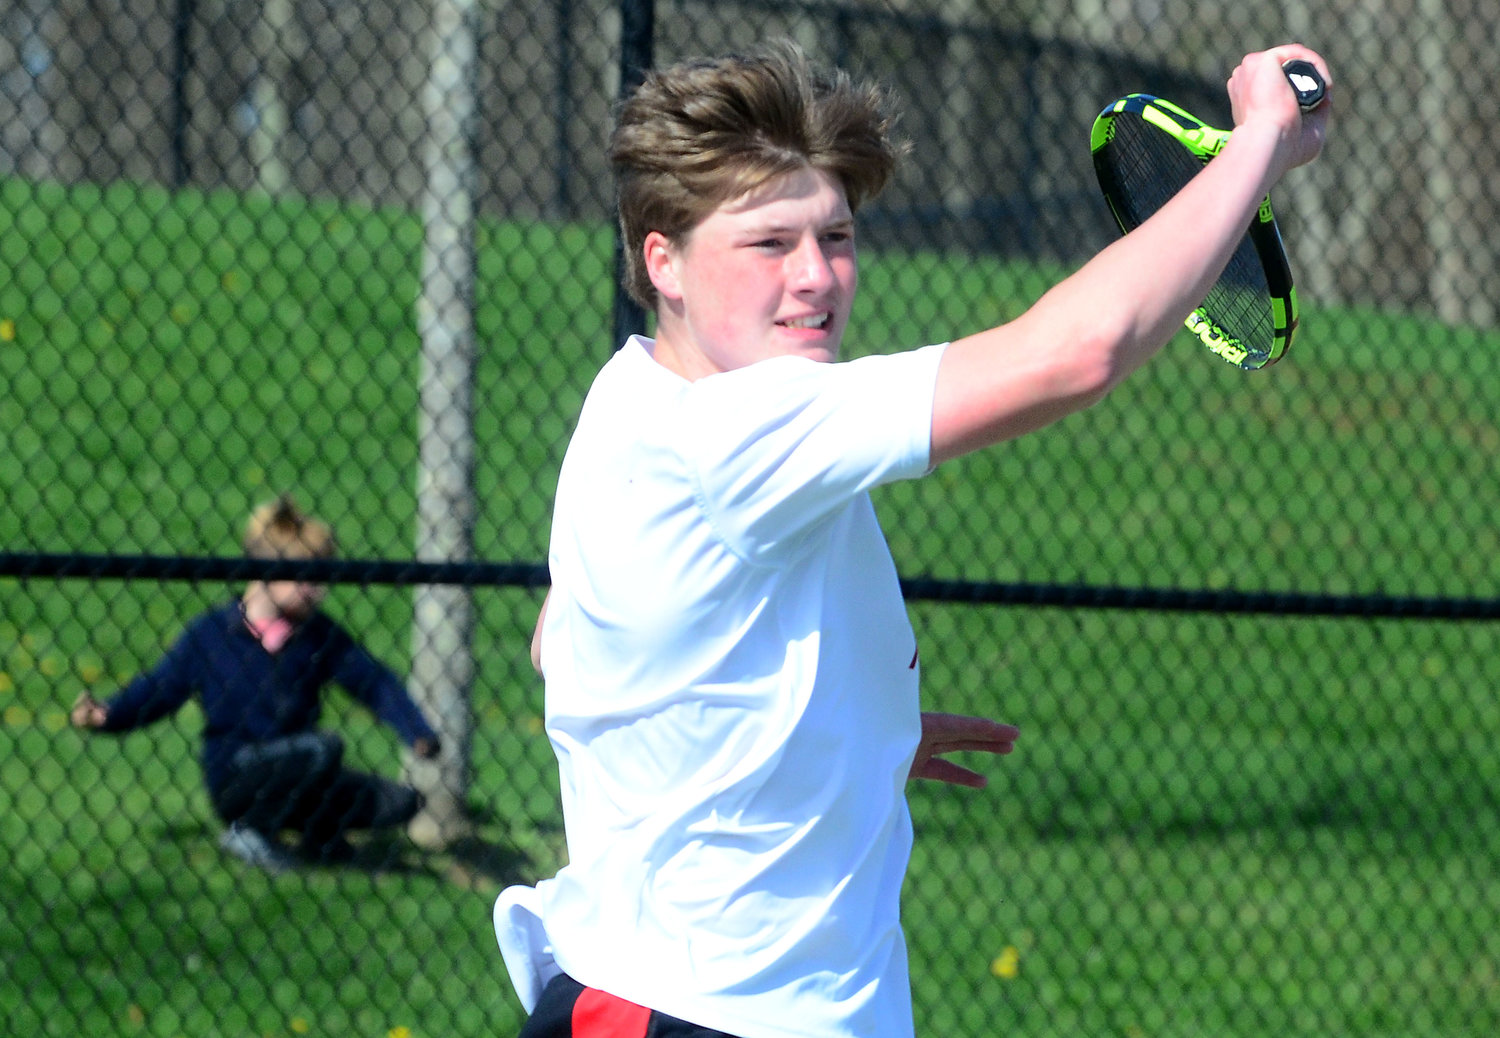 Matt Gacioch hits a volley during his match against Gian Salvator.